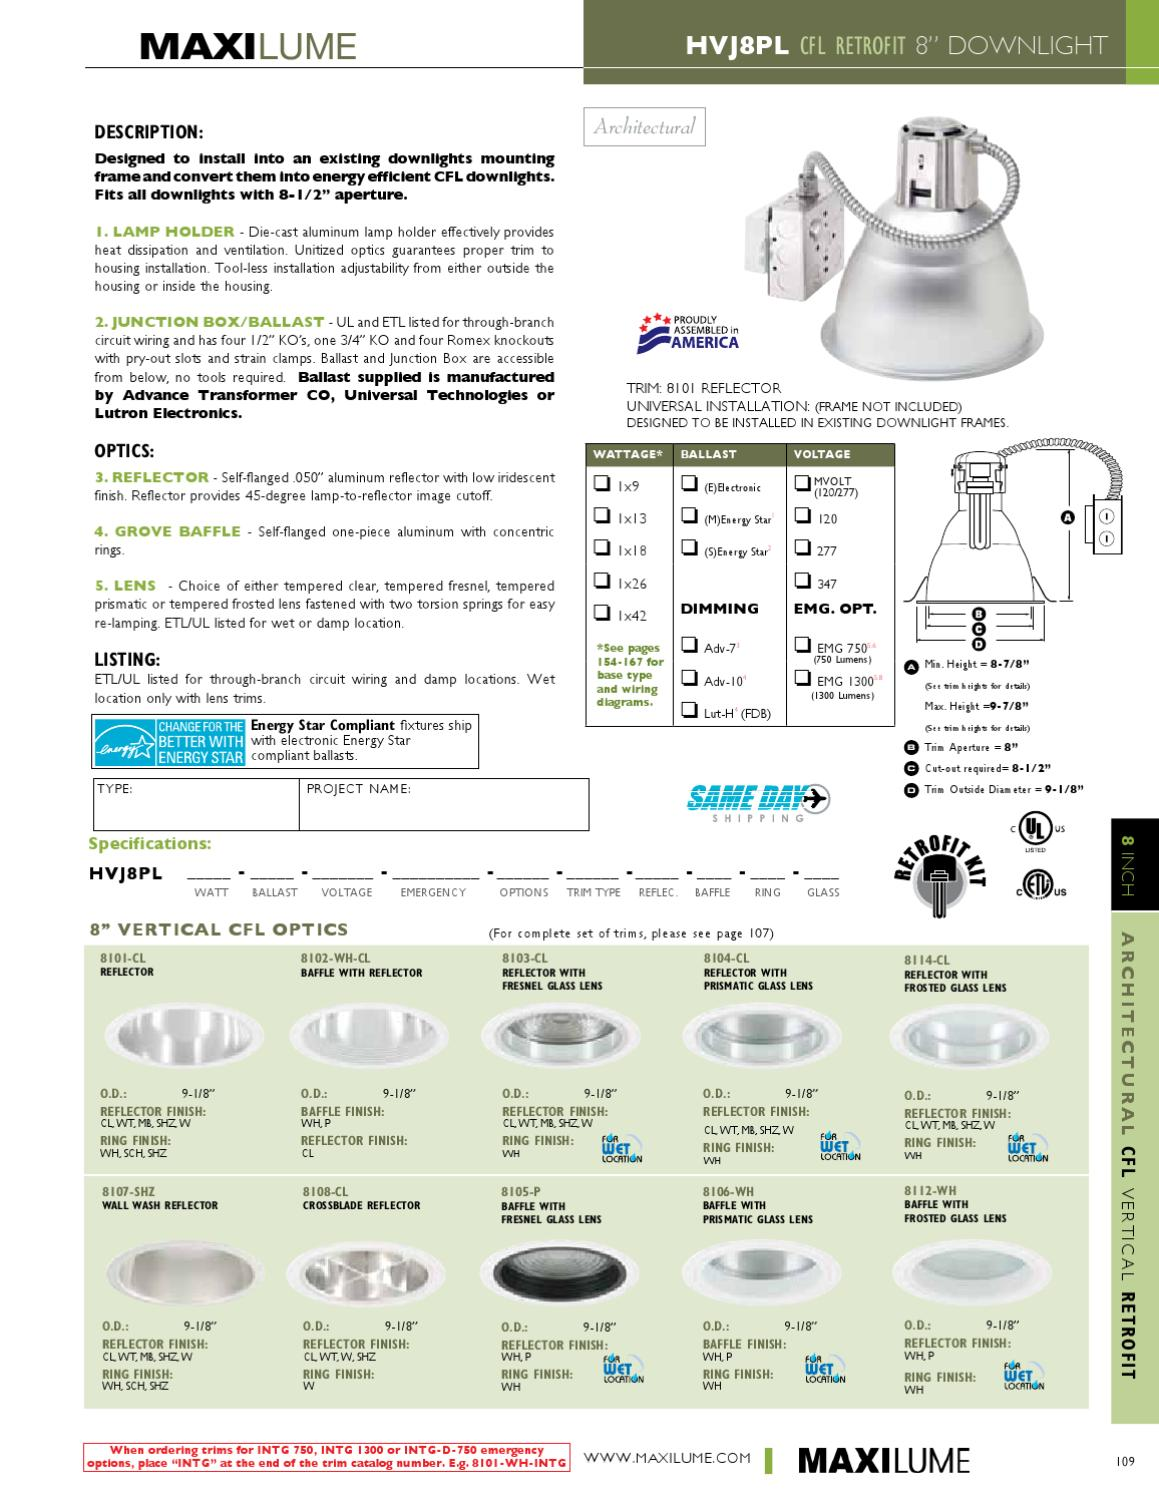 2011 Maxilume Catalog By Elite Lighting Issuu  sc 1 st  Democraciaejustica : maxilume lighting - www.canuckmediamonitor.org